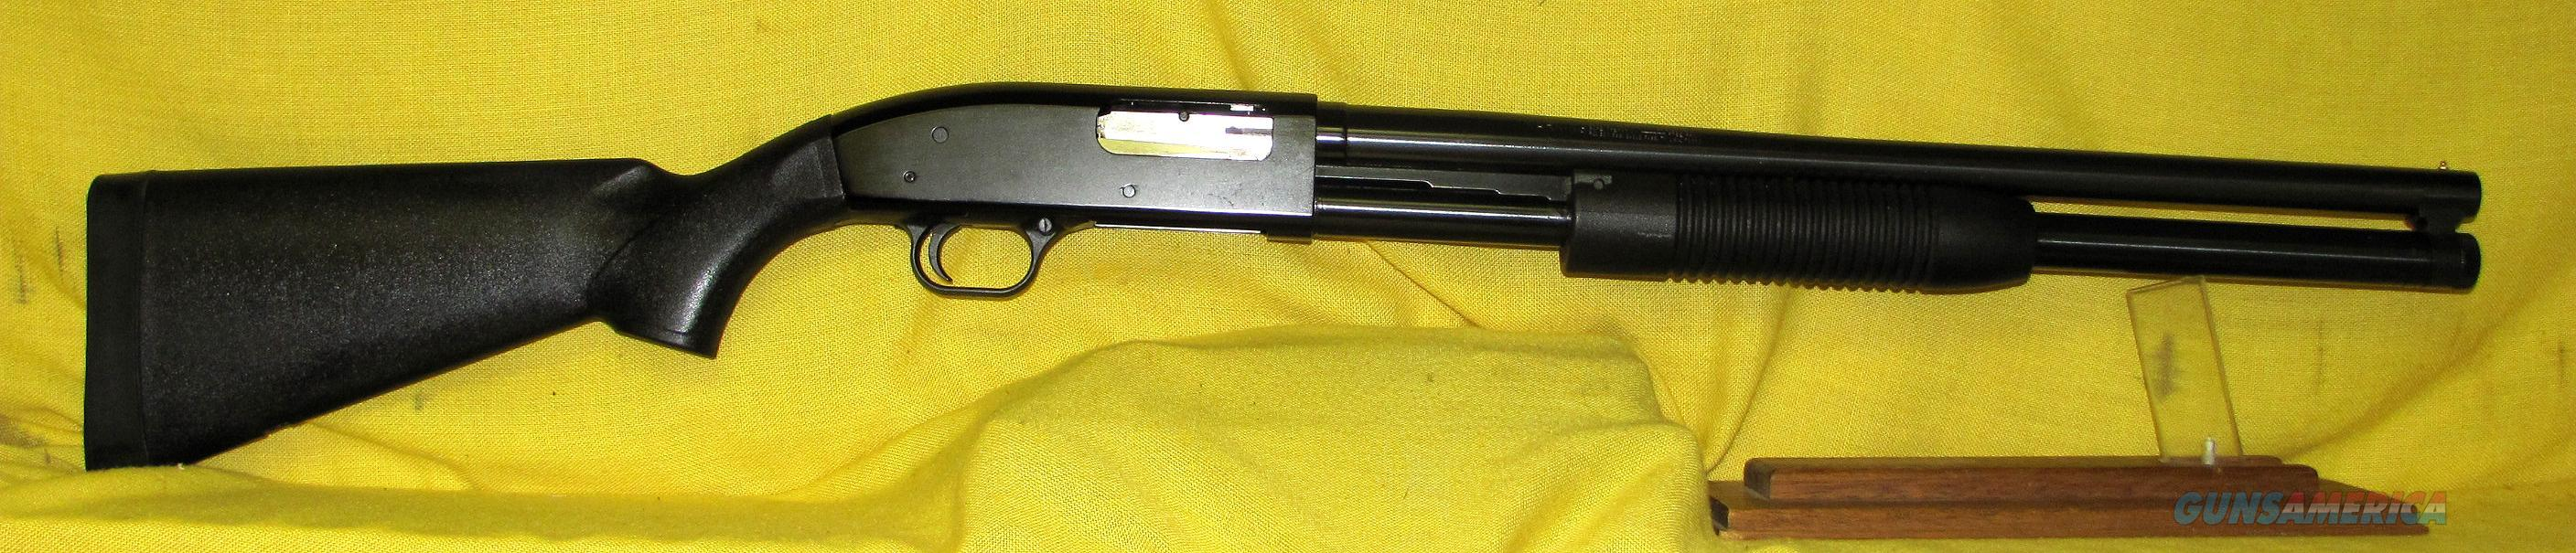 "MAVERICK 88 12GA 20"" BARREL EXTENDED TUBE  Guns > Shotguns > Maverick Shotguns"